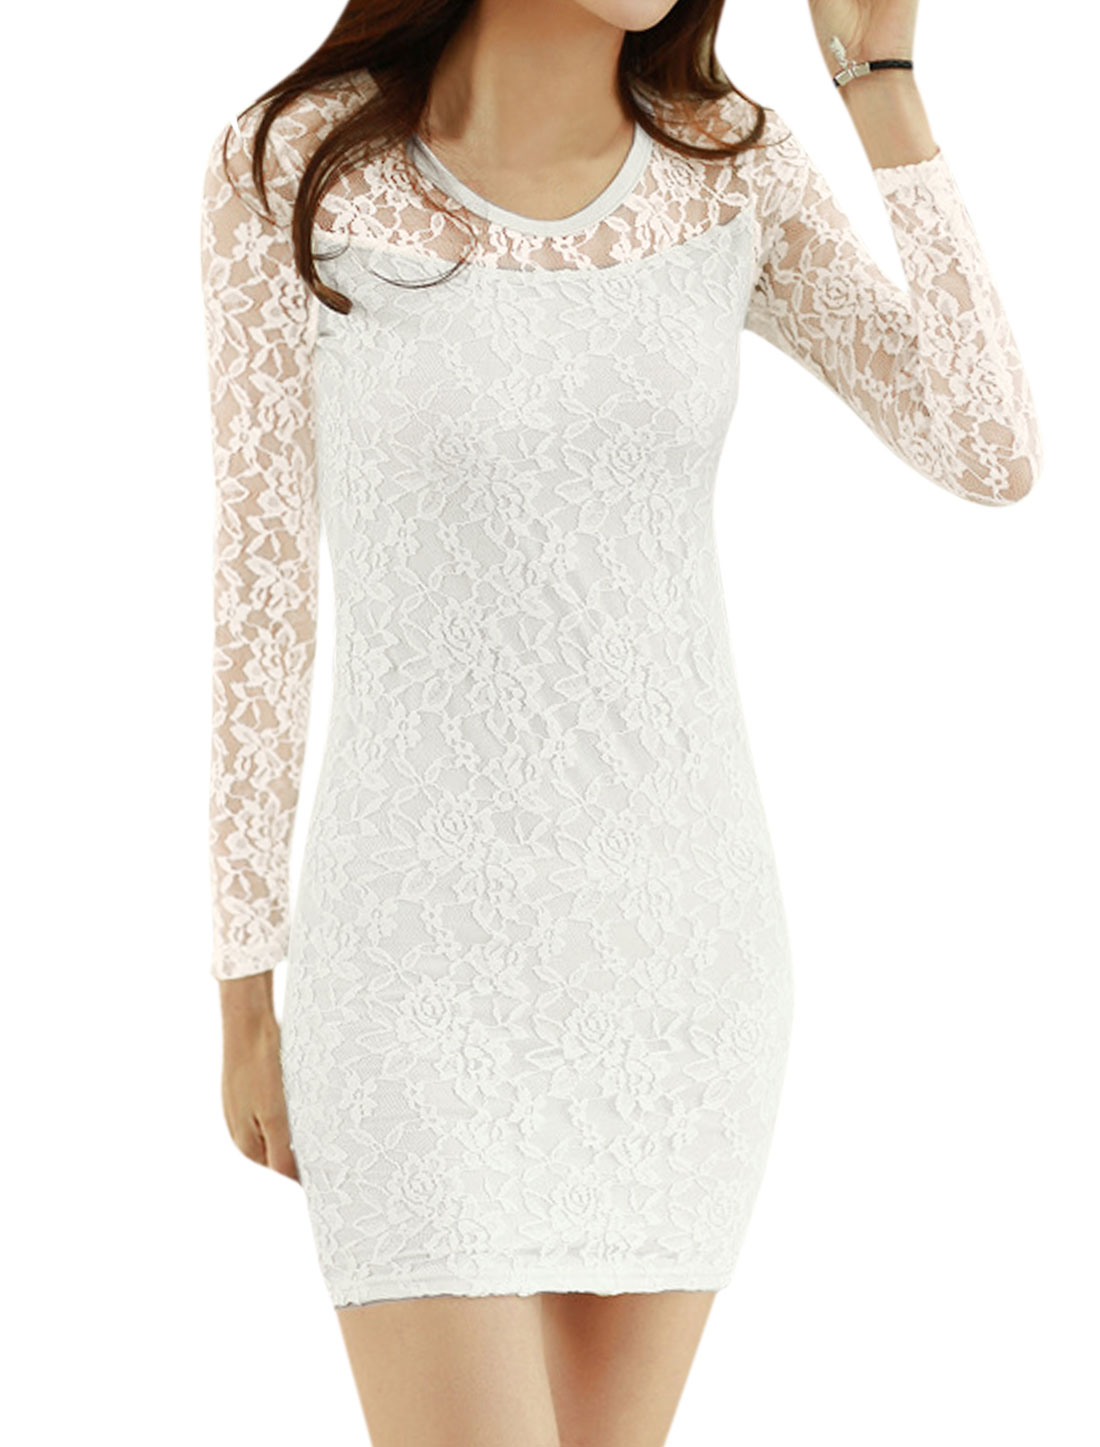 Women Round Neck Long Sleeves Slim Fit Lace Dress White M